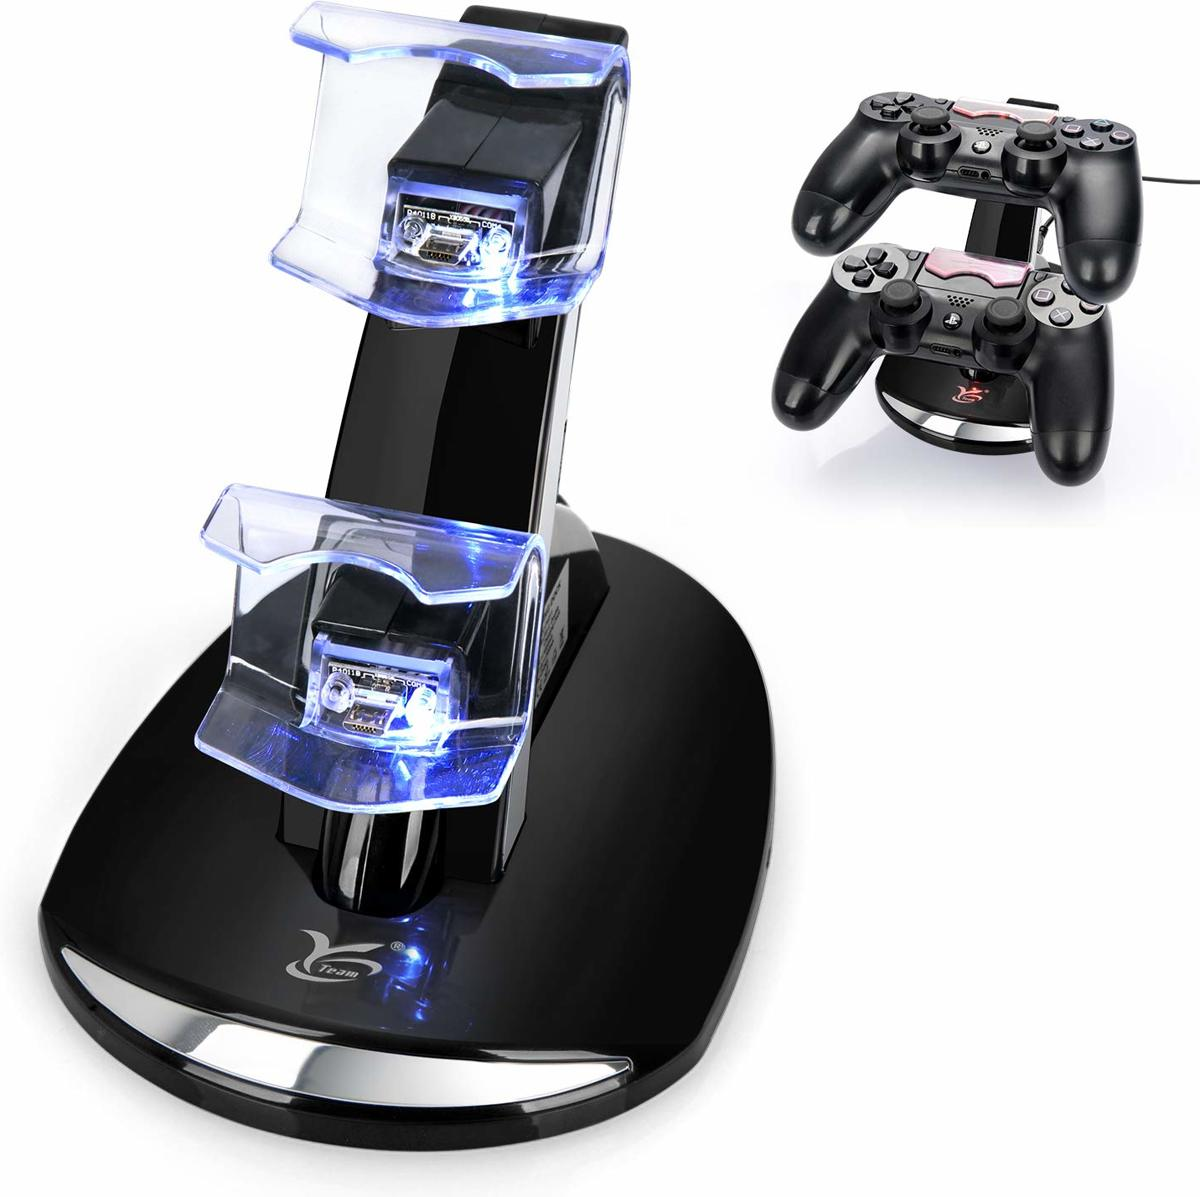 PS4 Dual Charging Docking Station   - USB Oplaadstation PS4 - Controller Oplaadstation - Dock Charger - Laadstation - Dubbel Charging Dock voor Controllers